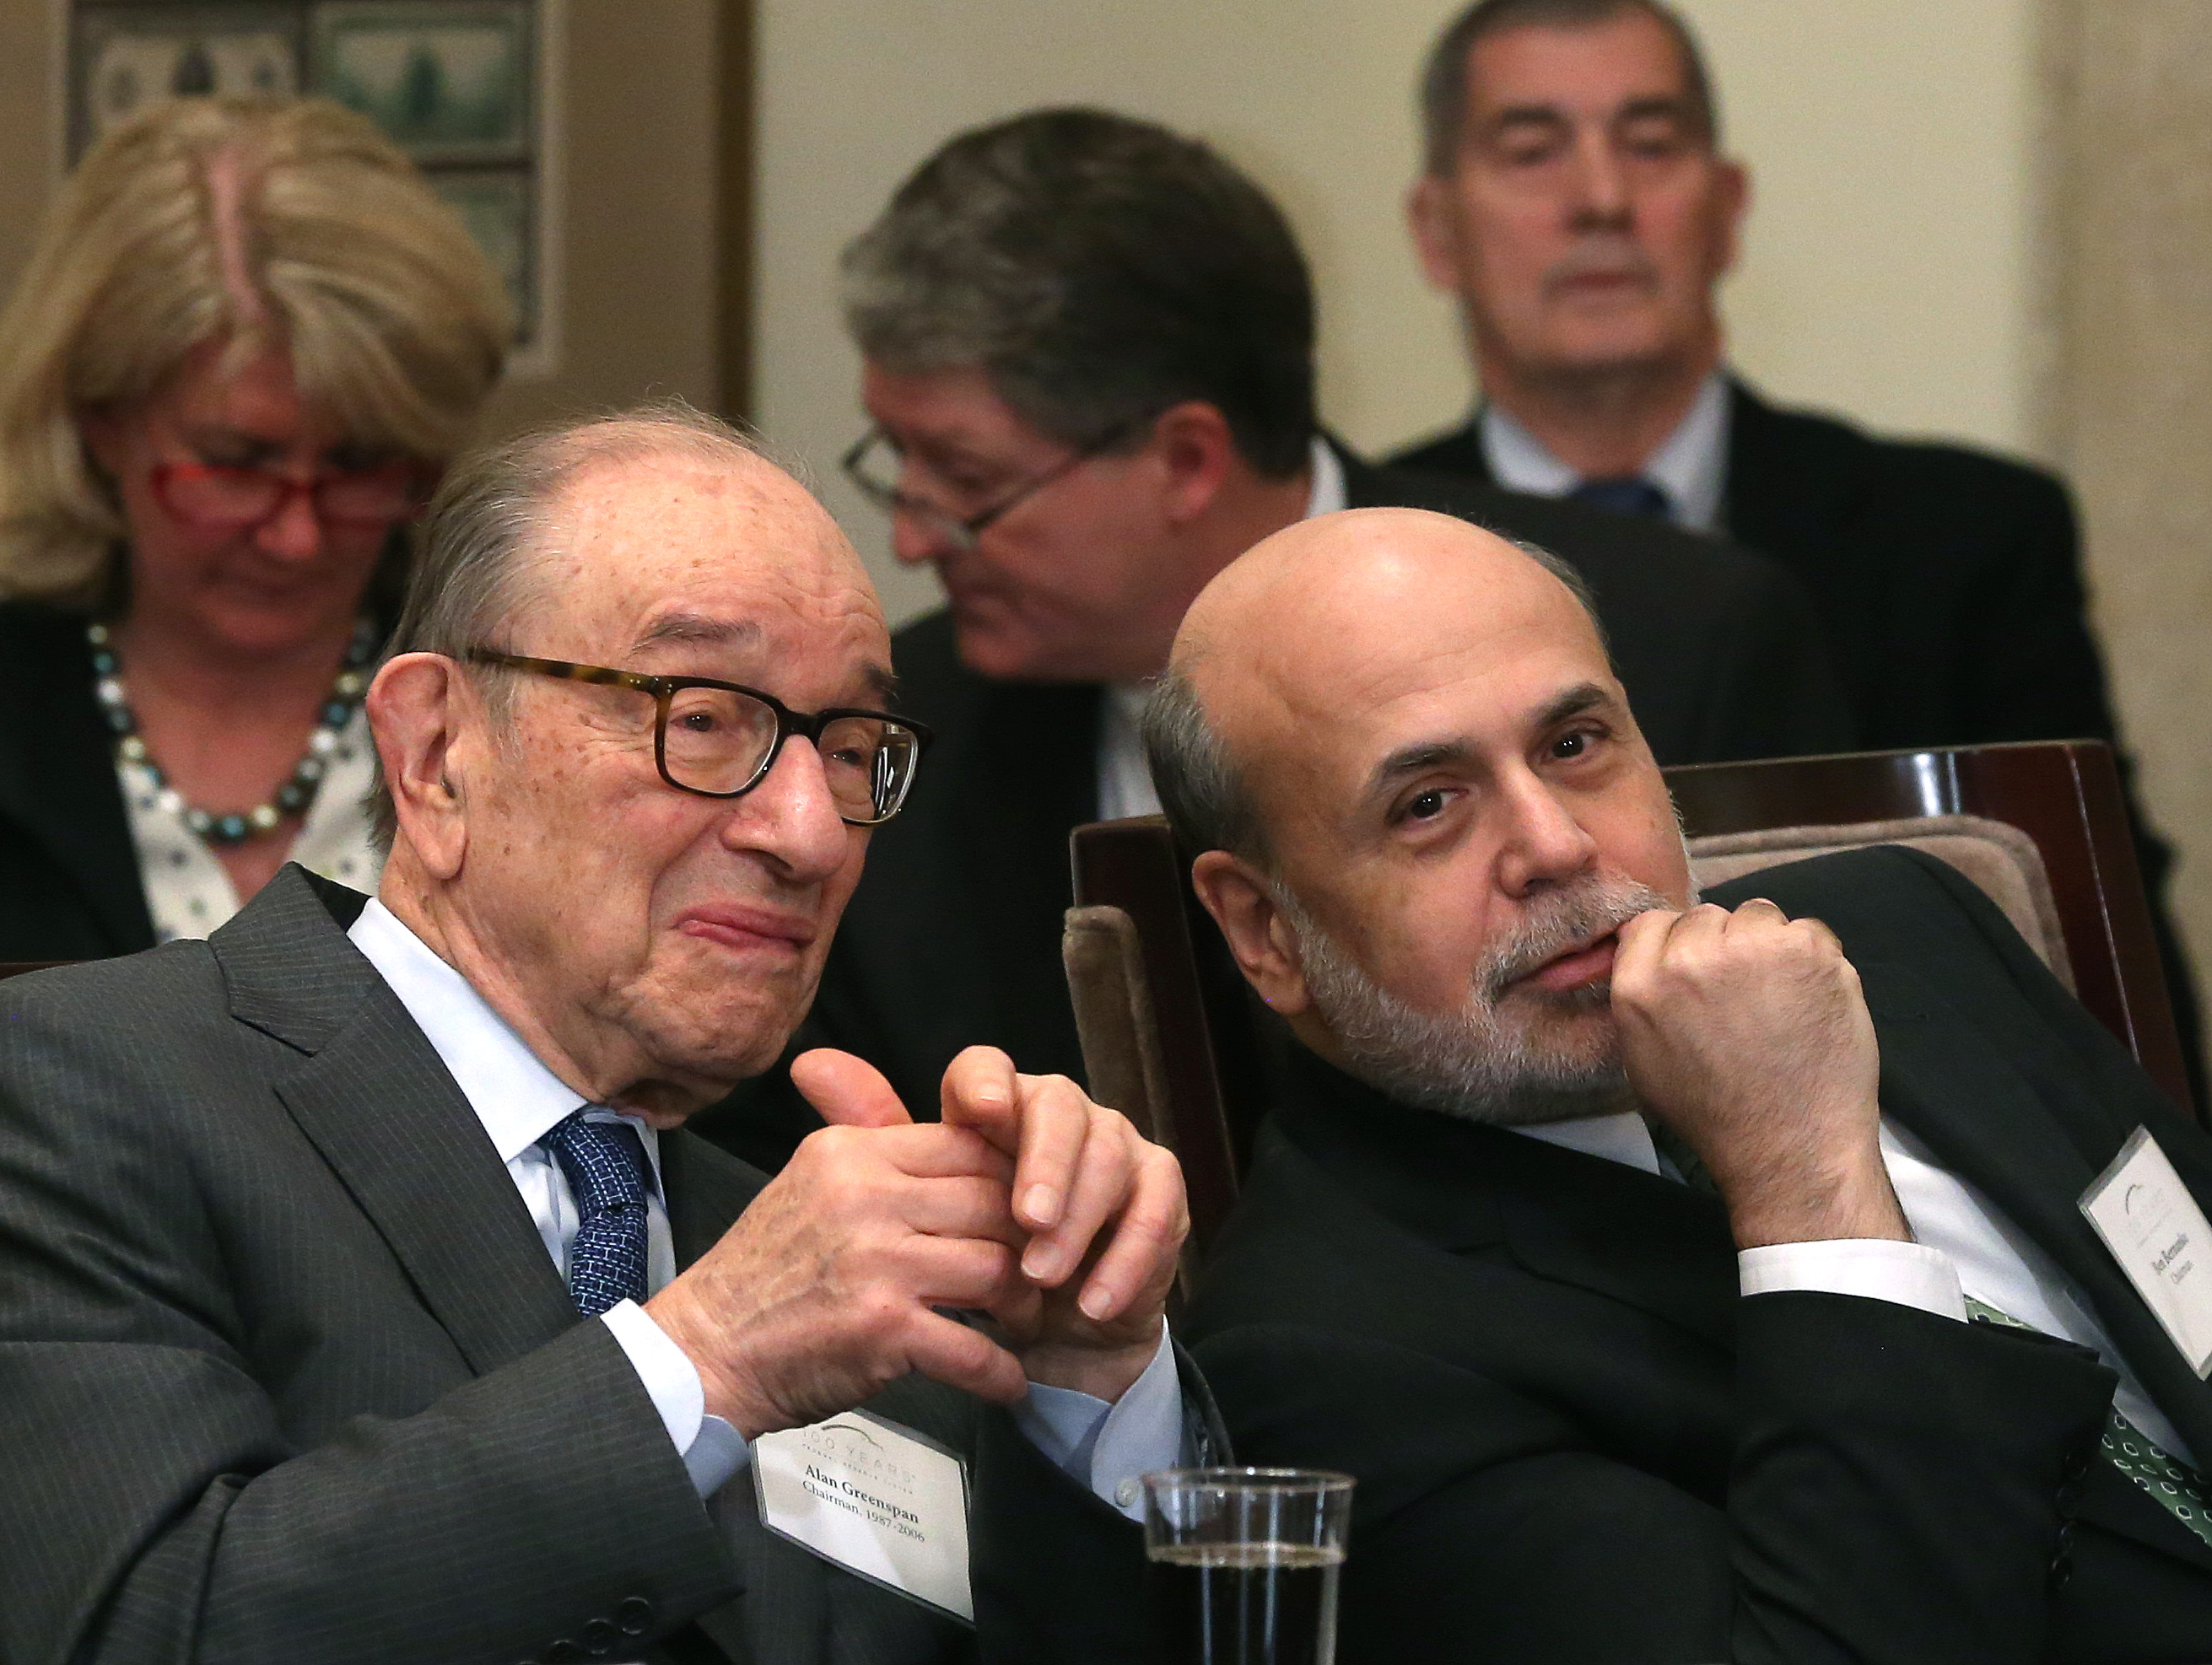 The Real Reasons Behind Negative Interest Rates and Banning Cash